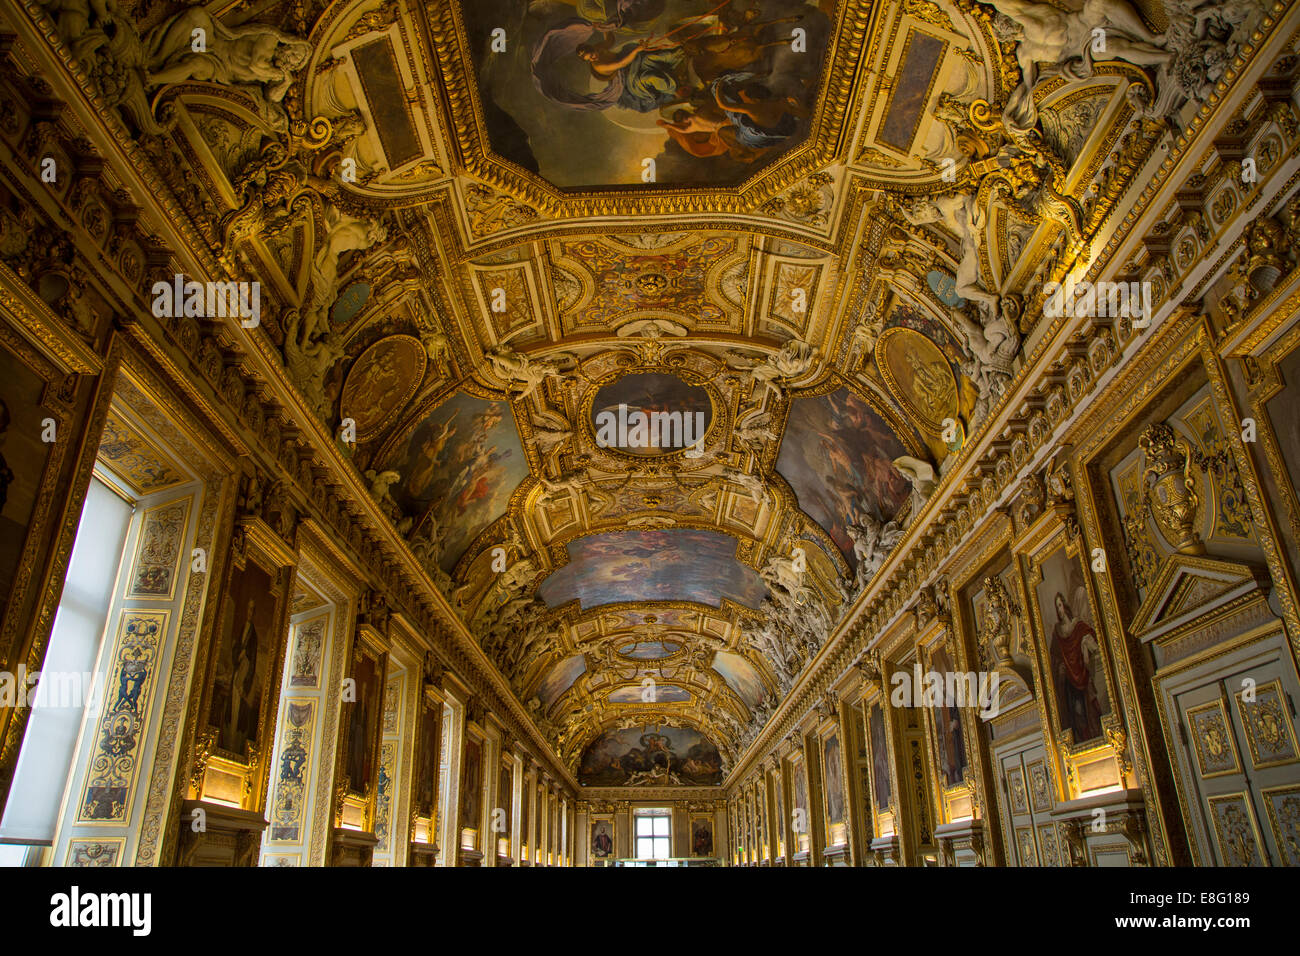 Ornate ceiling in Galerie d'Apollon in the Denon wing of Musee du Louvre, Paris, France - Stock Image